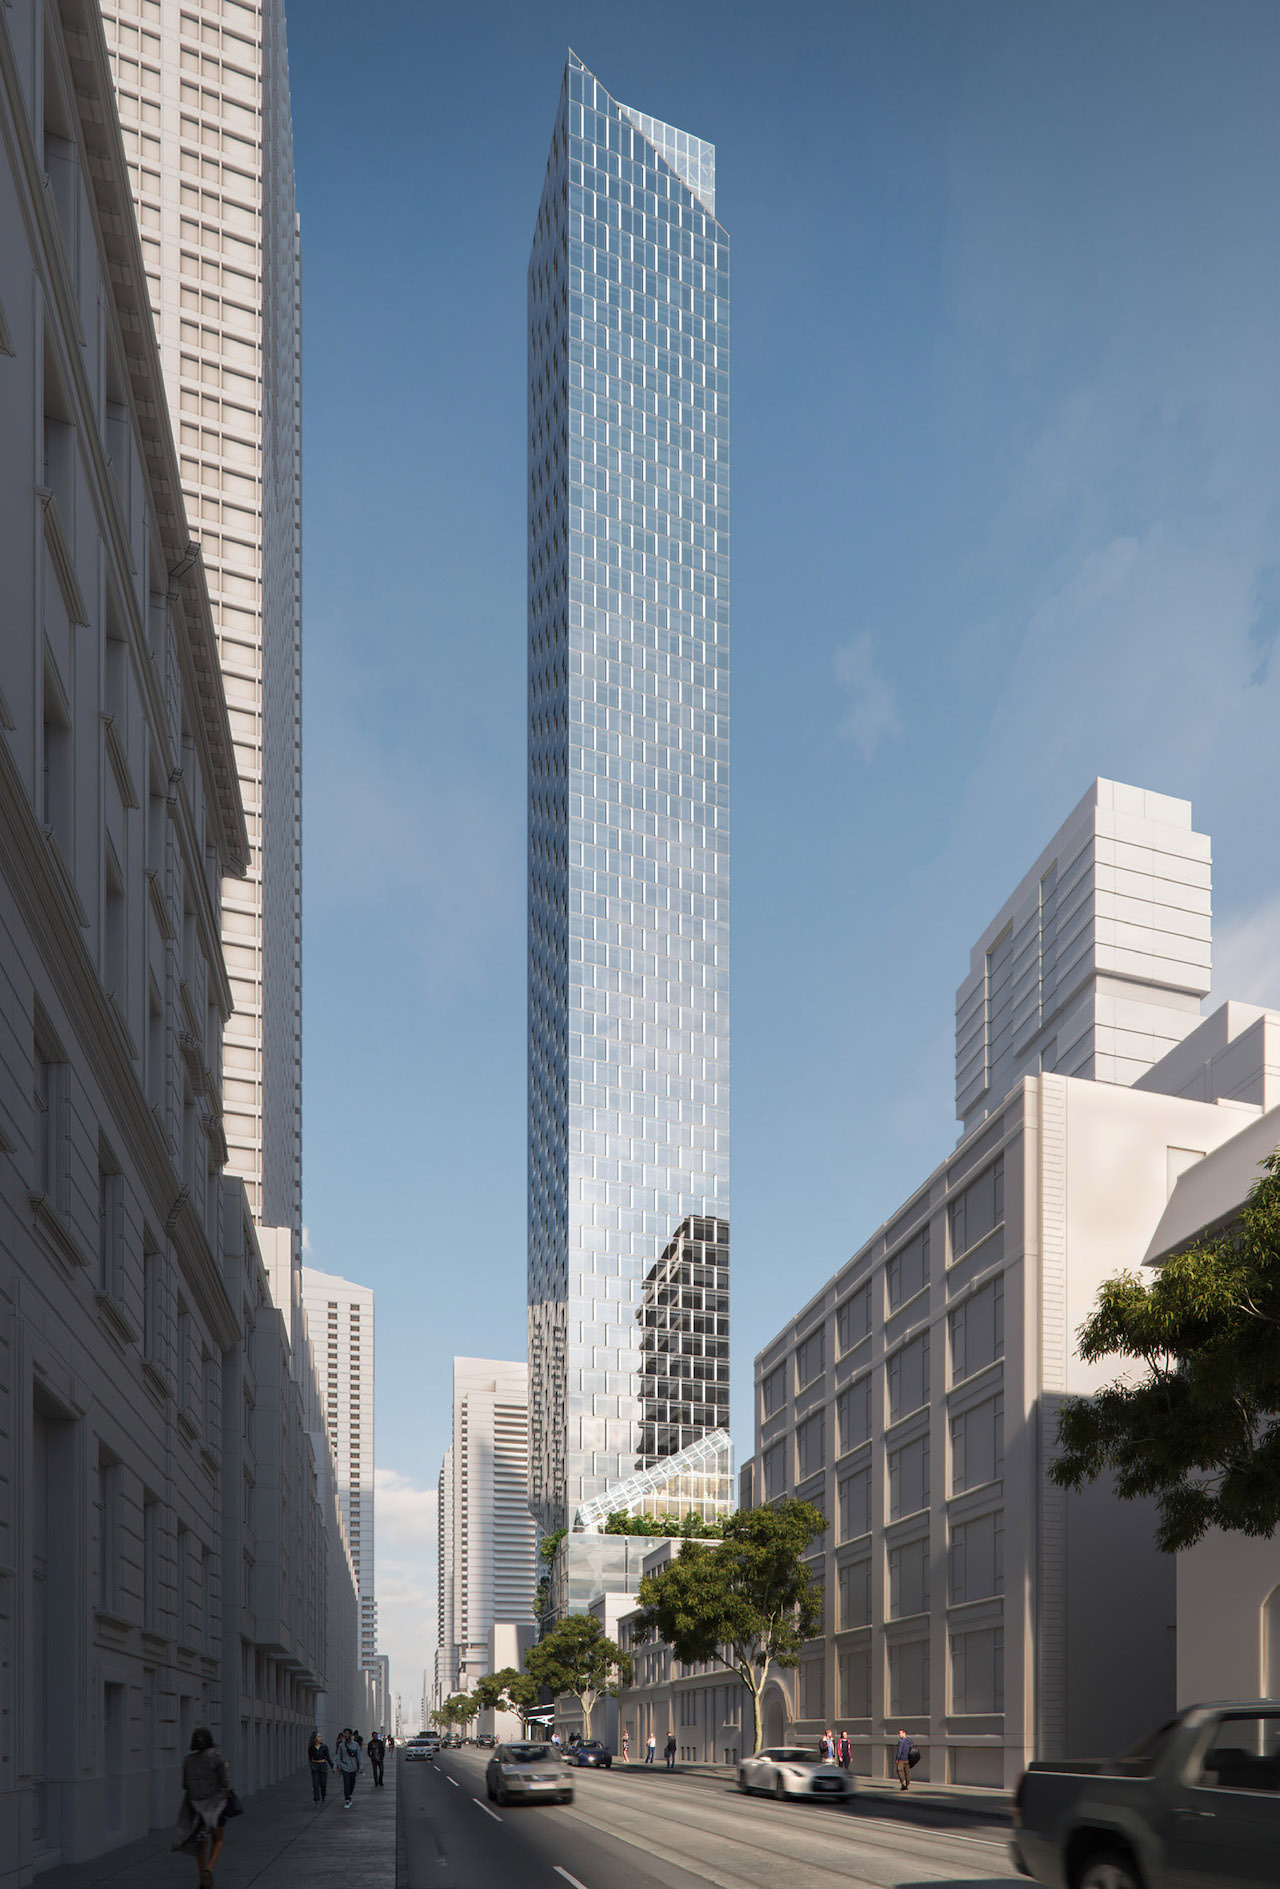 240 Adelaide Street West, Freed Developments, AS + GG Architecture, Toronto